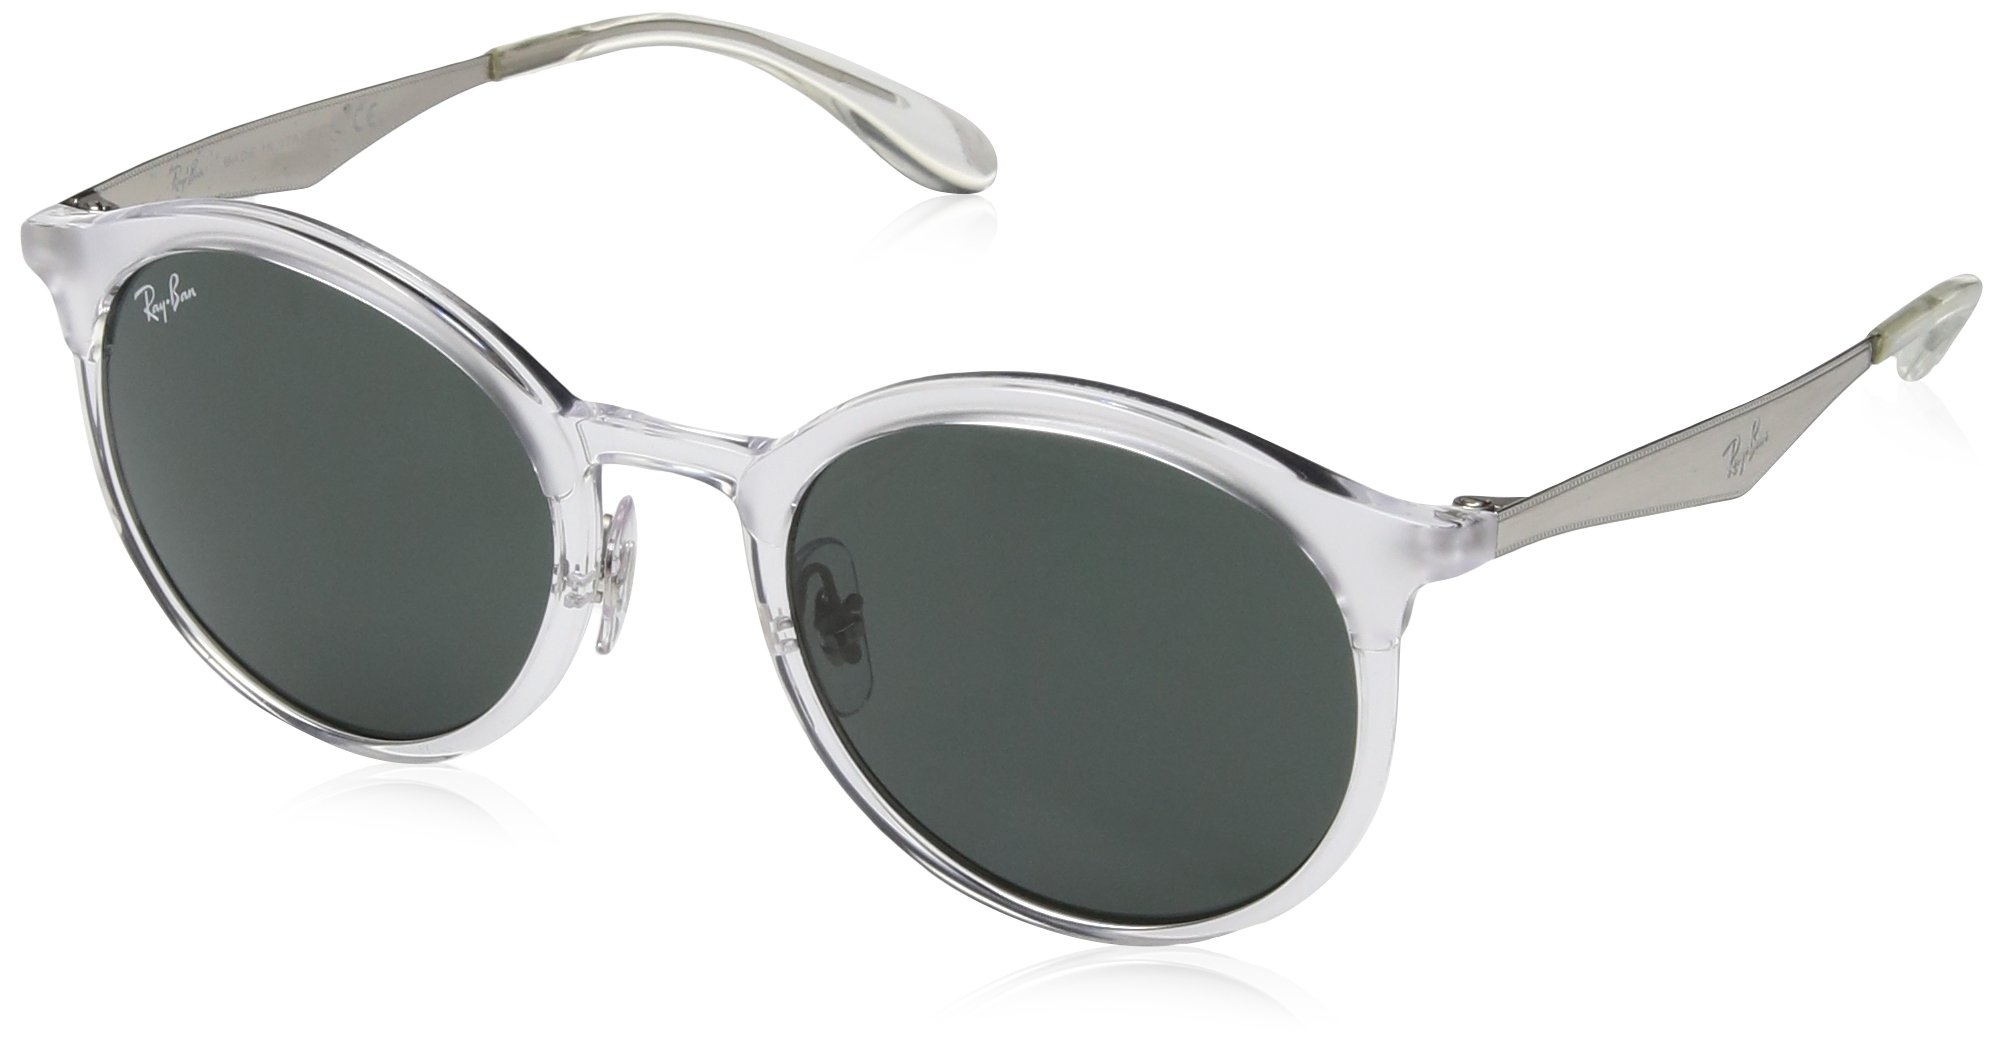 Ray-Ban Injected Unisex Round Sunglasses, Transparent, 51 mm by Ray-Ban (Image #1)